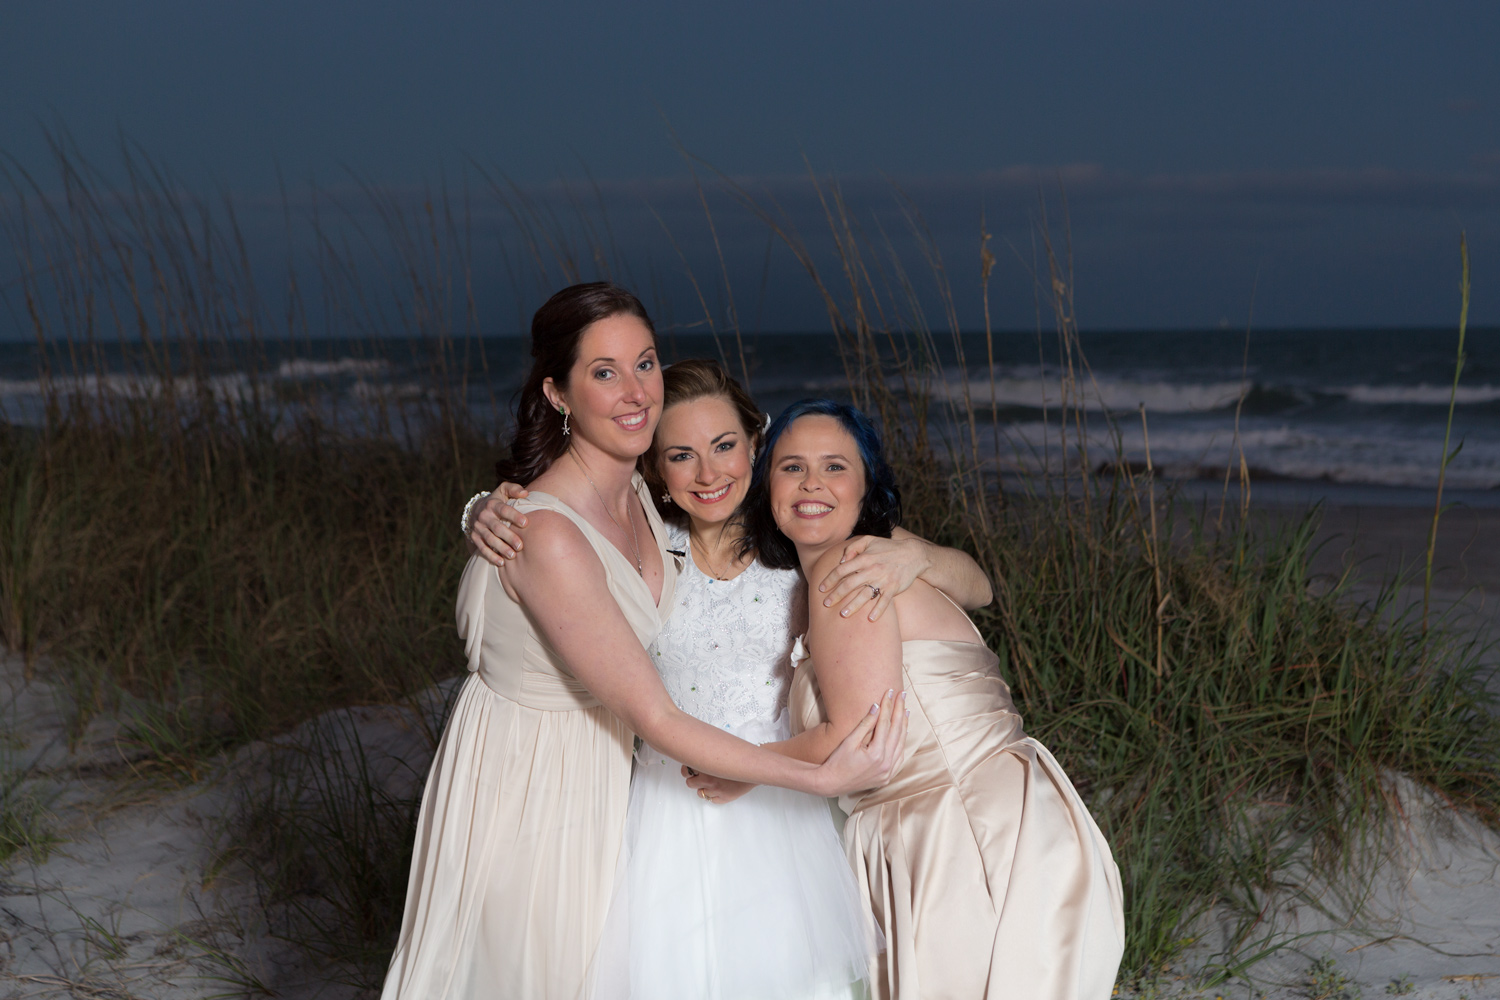 beach_wedding-1196-1.jpg